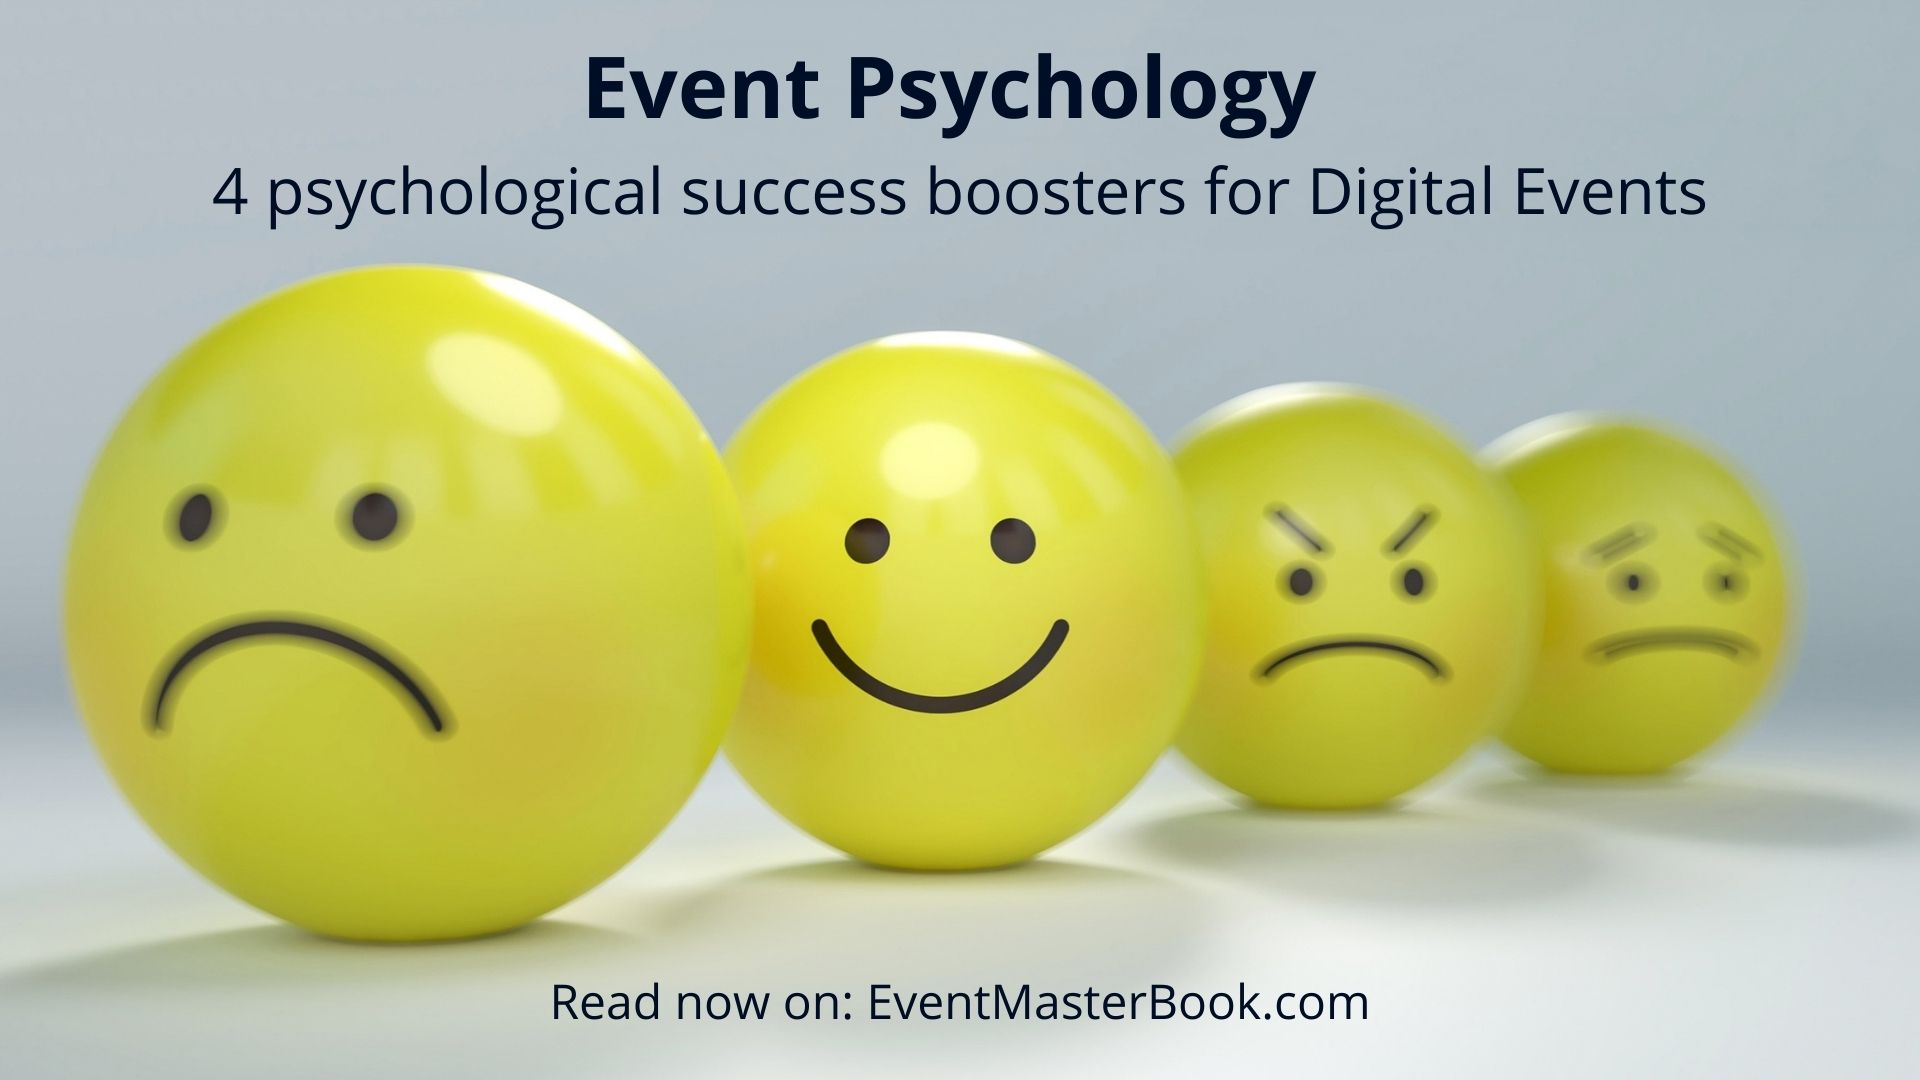 Event Psychology: 4 psychological success boosters for Digital Events (Photo credits: canva.com / AdCoach / adcoach.de)